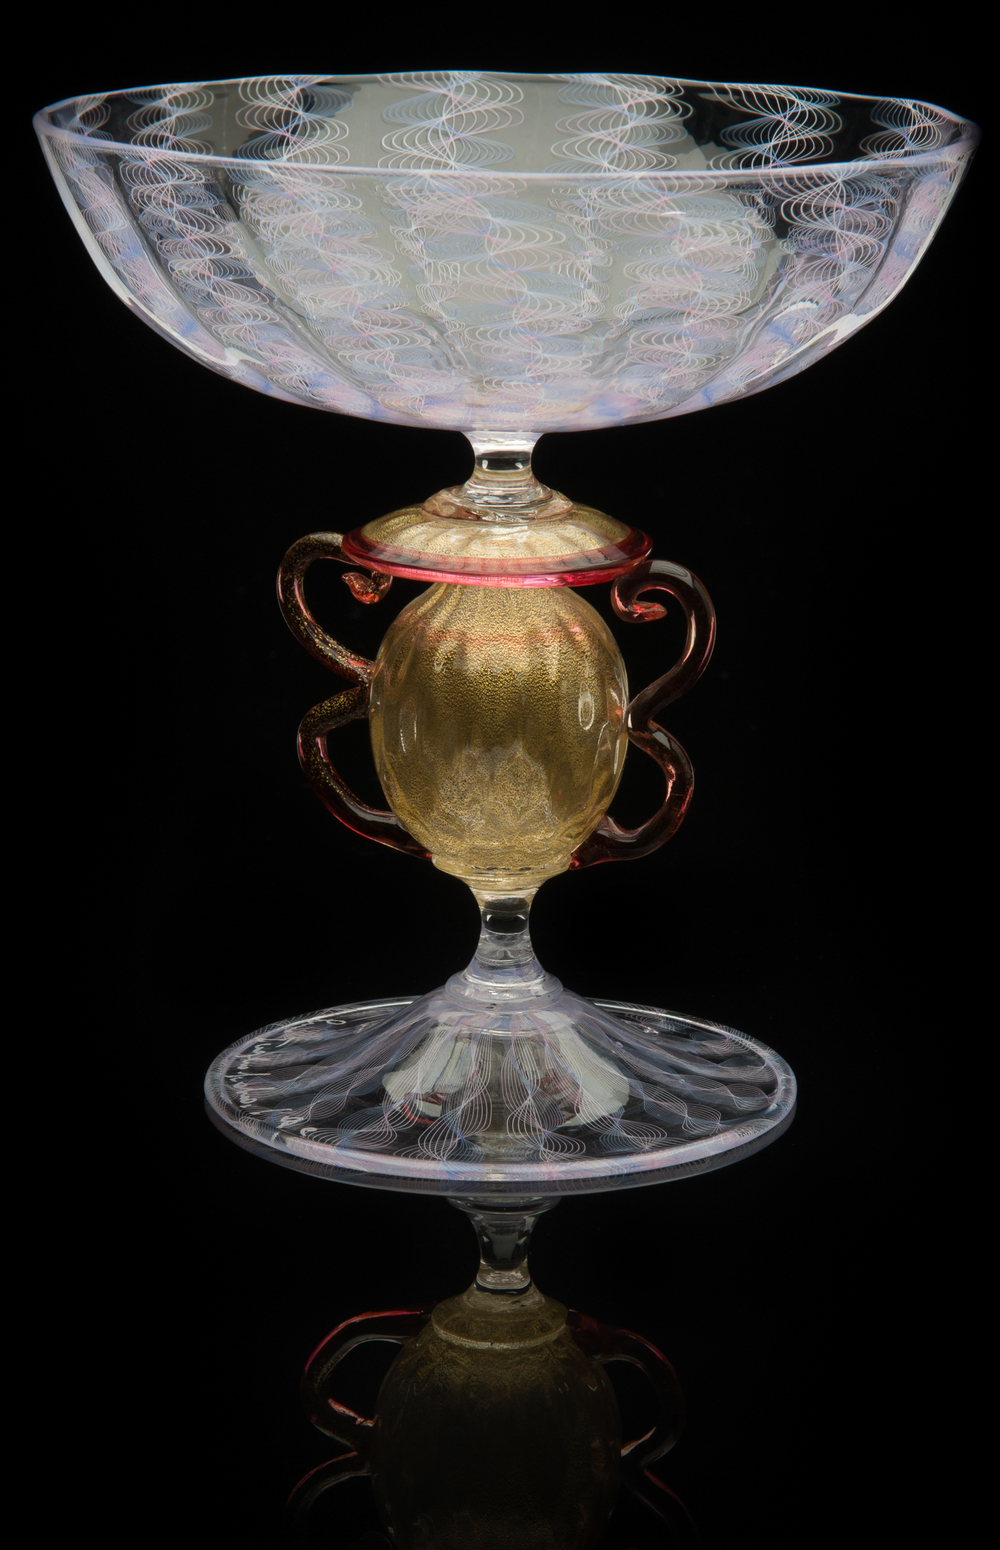 Lino Tagliapietra,  Amphoriskos-stem   Goblet  (1991-1994, glass and gold leaf, 5 3/8 x 5 1/4 x 5 1/4 inches), LT.27